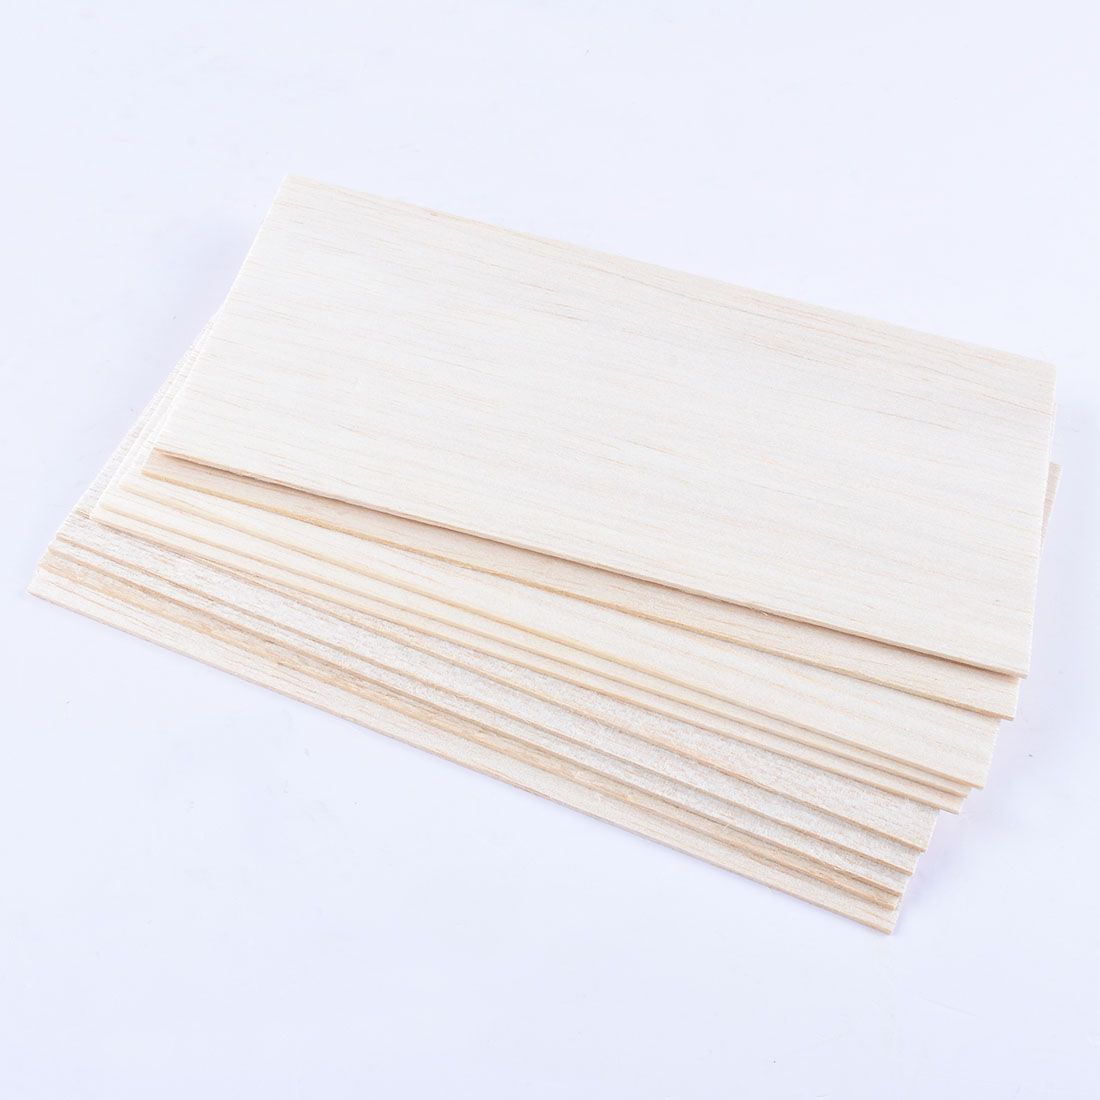 10pcs 100x200x1.5mm Thin Wood Board Panel Plaque For DIY Arts Craft Decor Building Model Materials